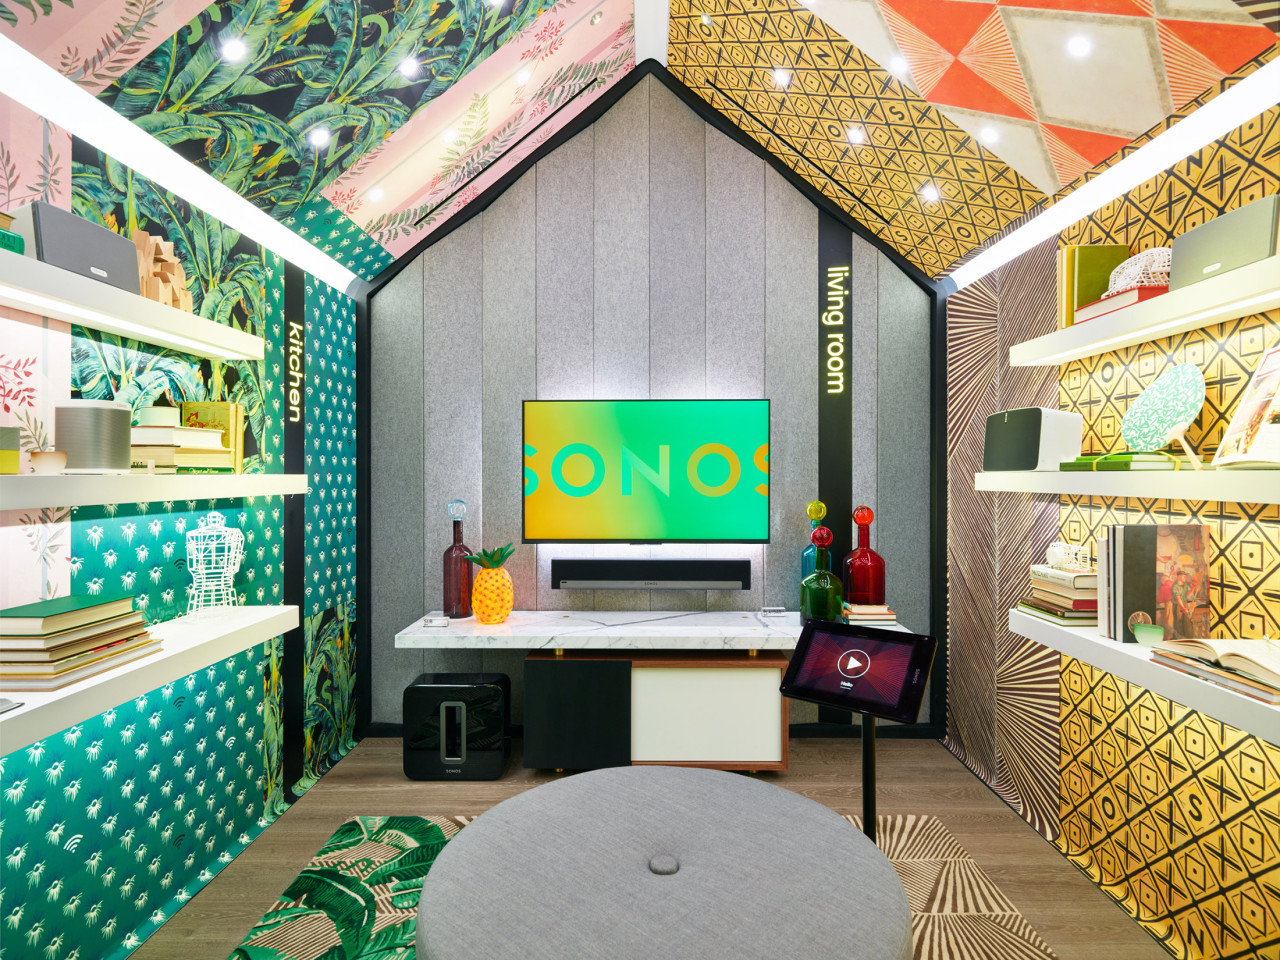 Sonos opens their first retail store in soho design milk for Home good stores nyc